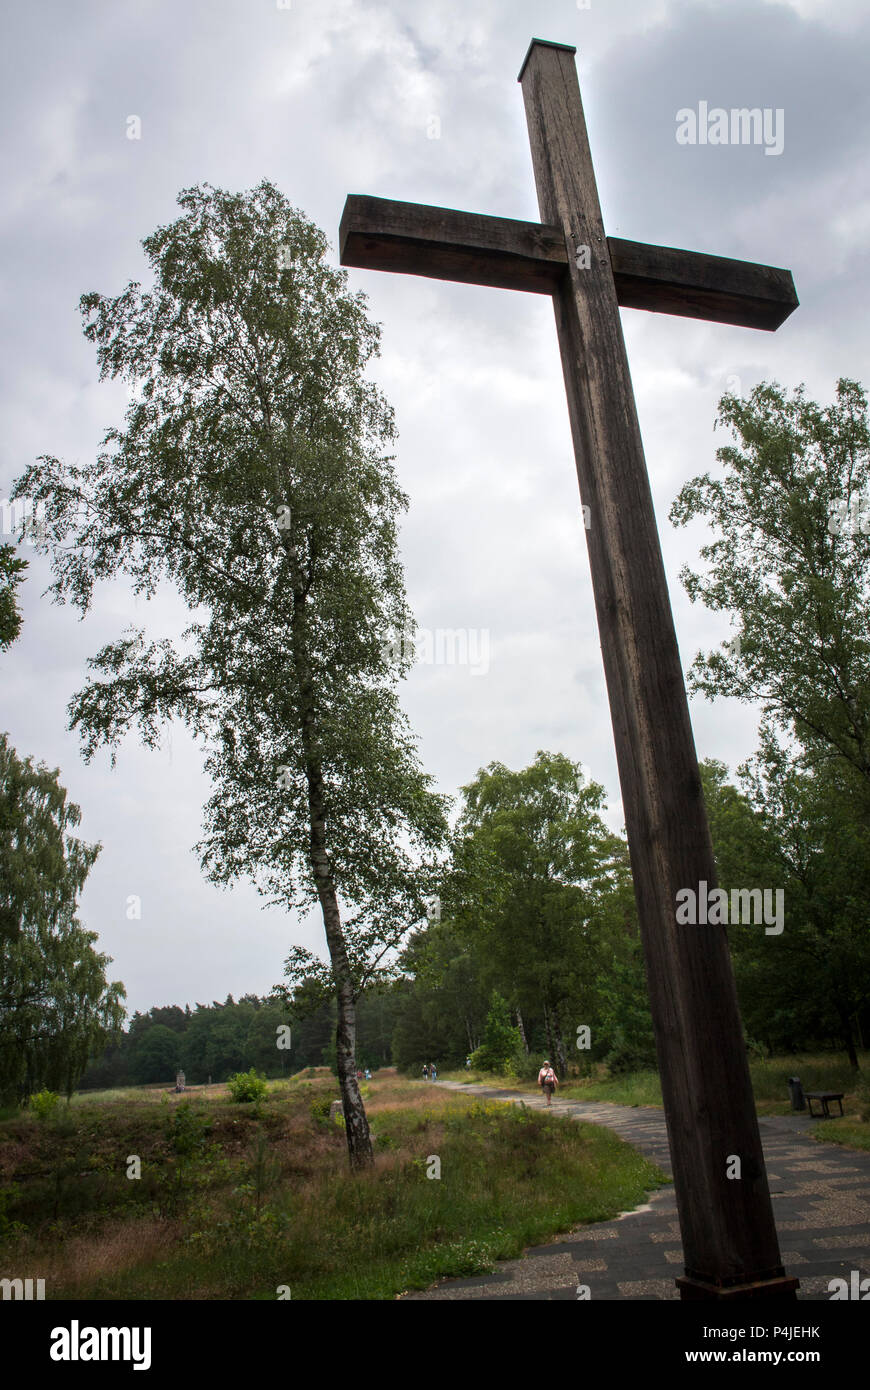 On November 2, 1945, a large wooden cross was dedicated as a memorial to the murdered Polish prisoners. The original has been replaced due to decay. - Stock Image